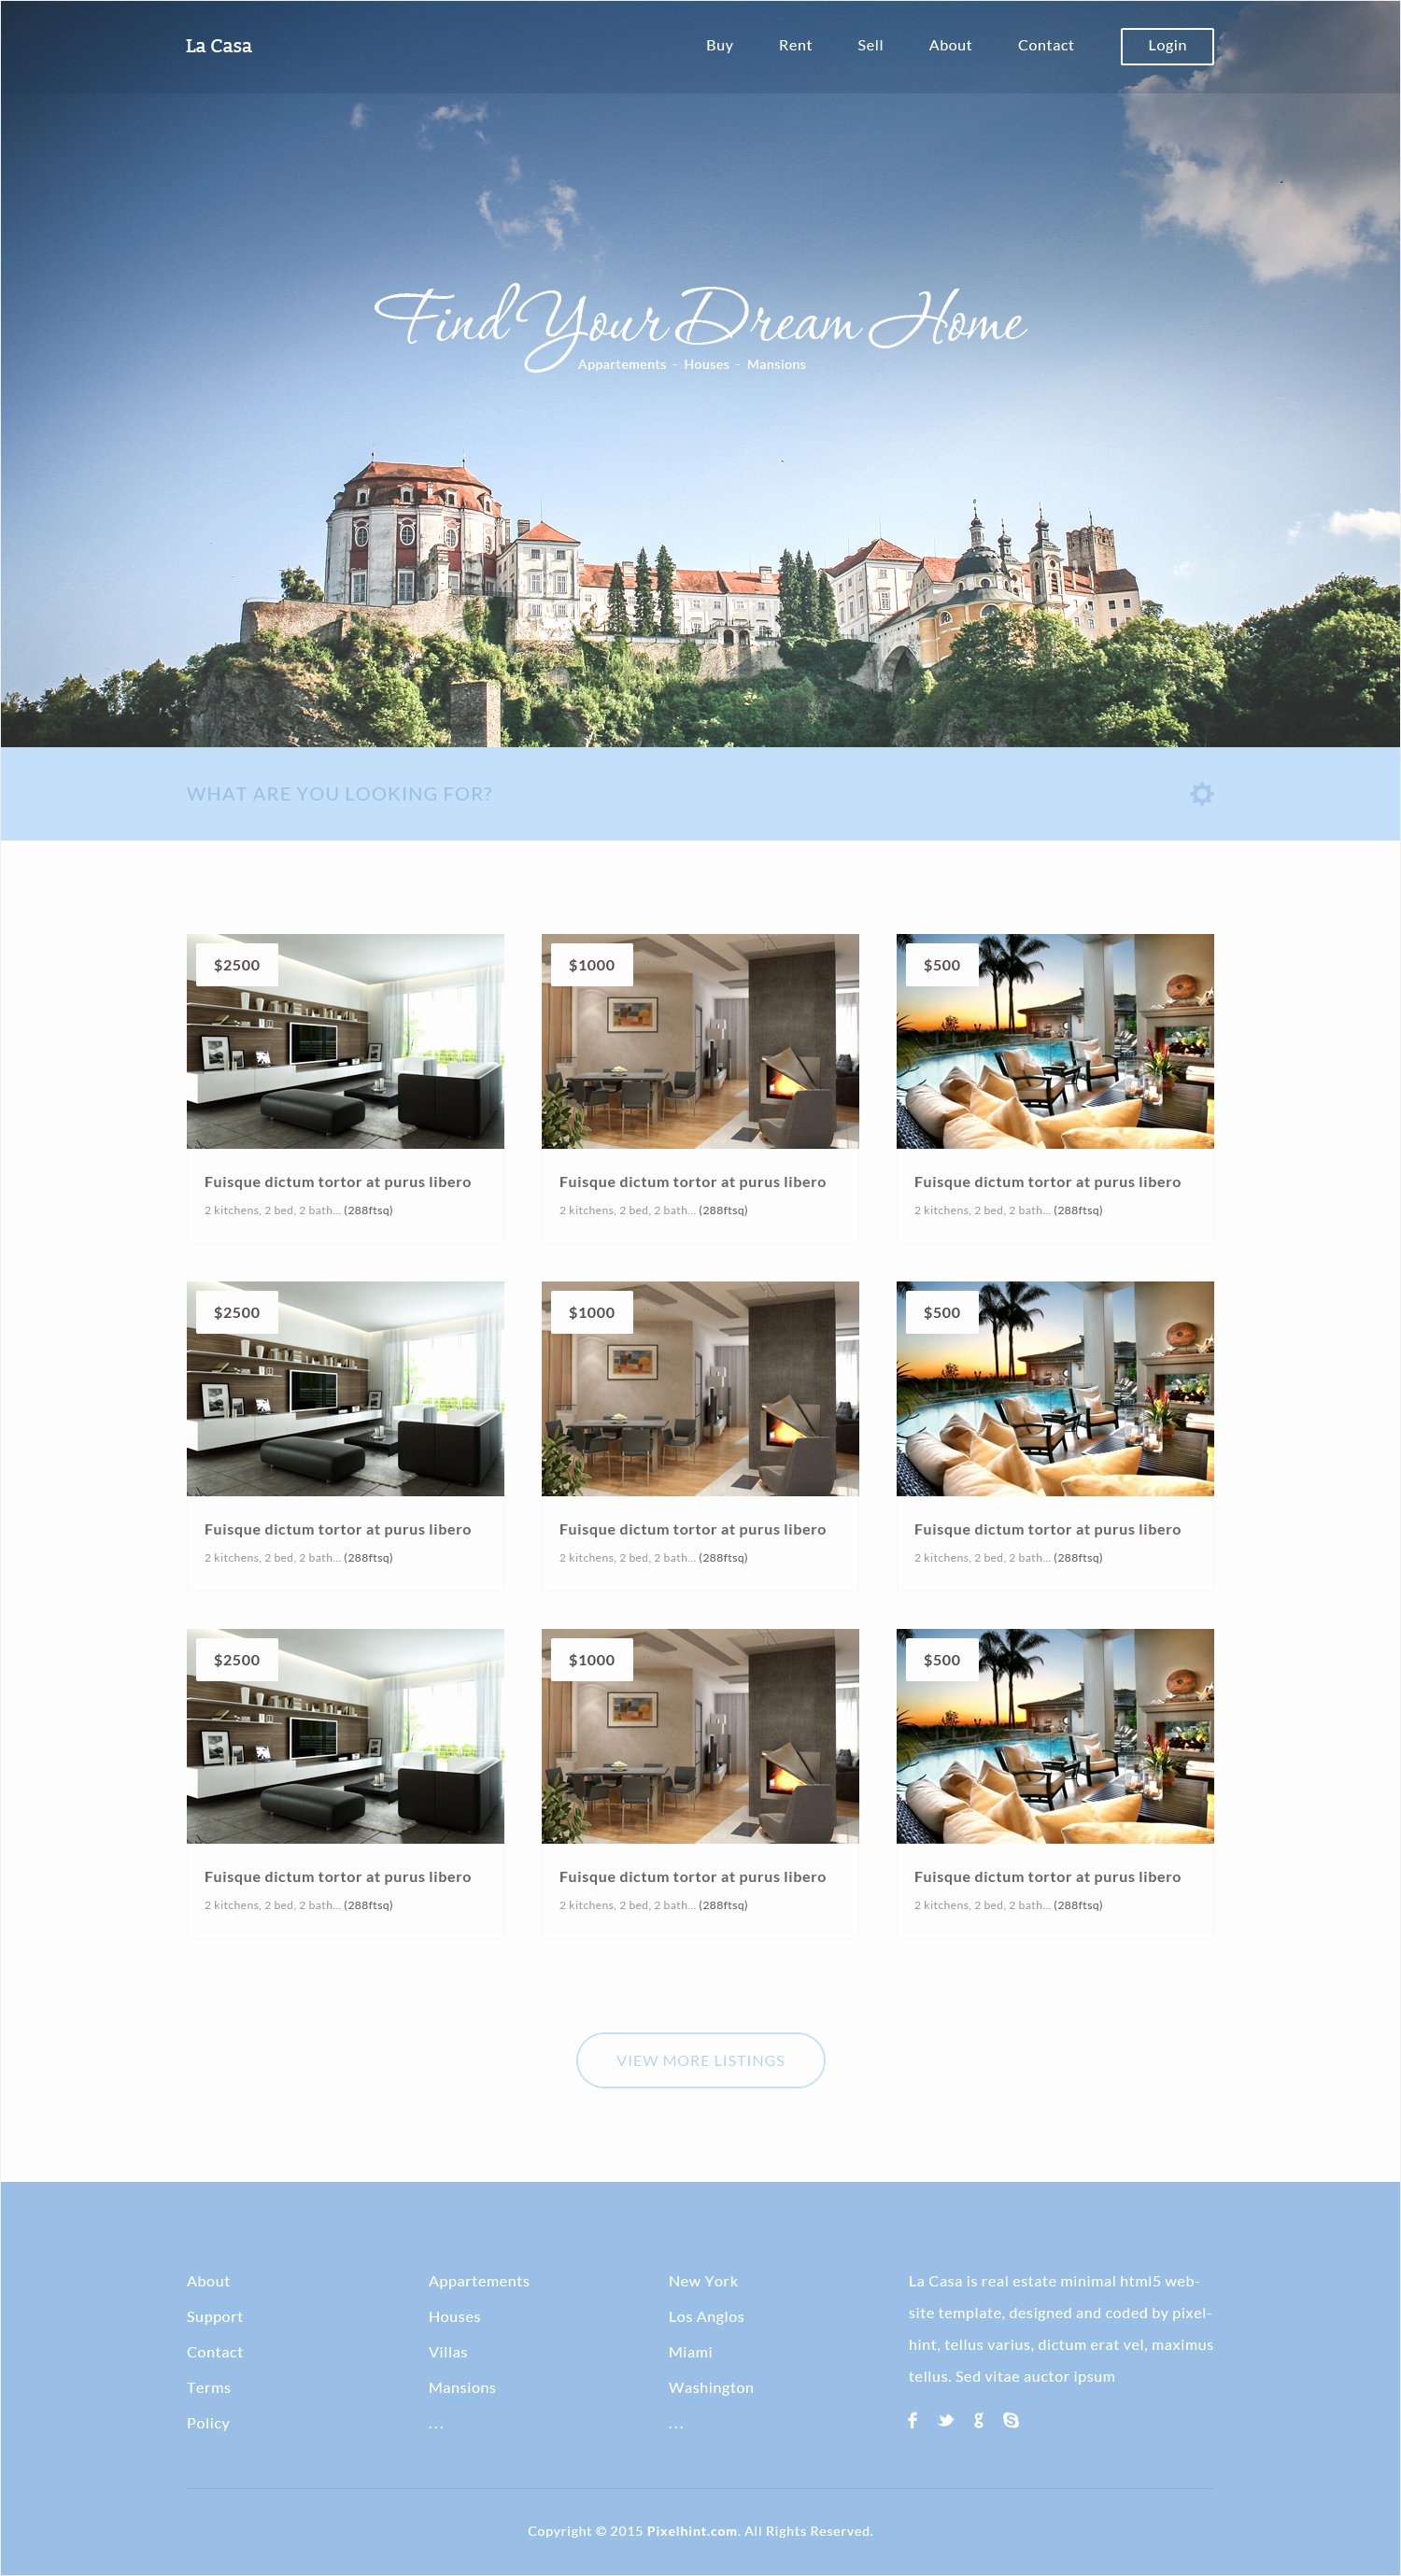 Free Real Estate Templates Unique La Casa Free Real Estate Fully Responsive HTML5 Css3